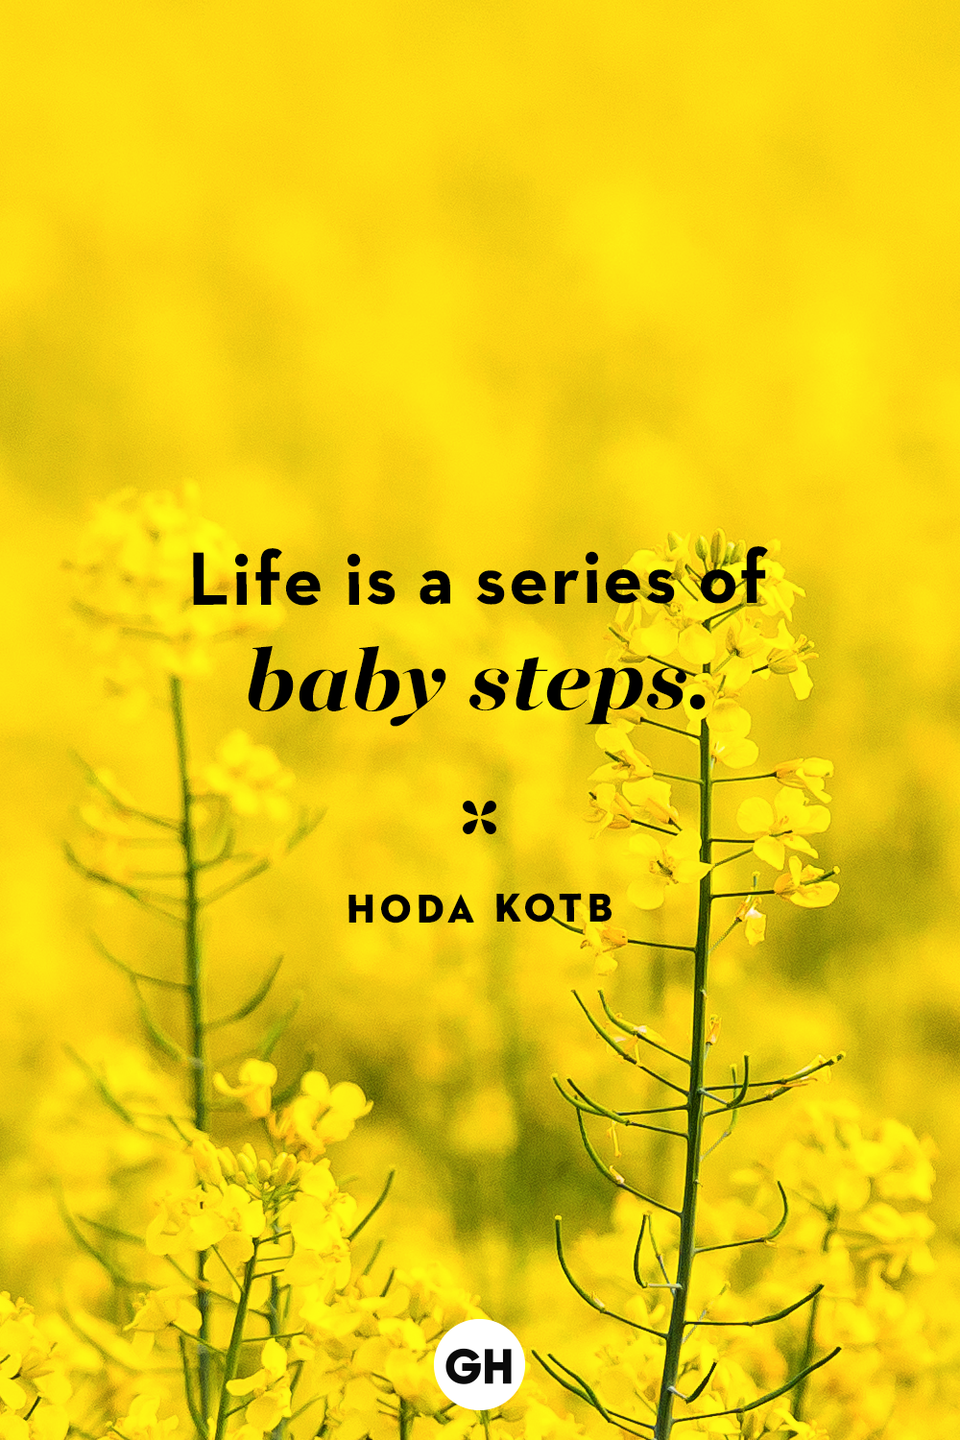 <p>Life is a series of baby steps.</p>